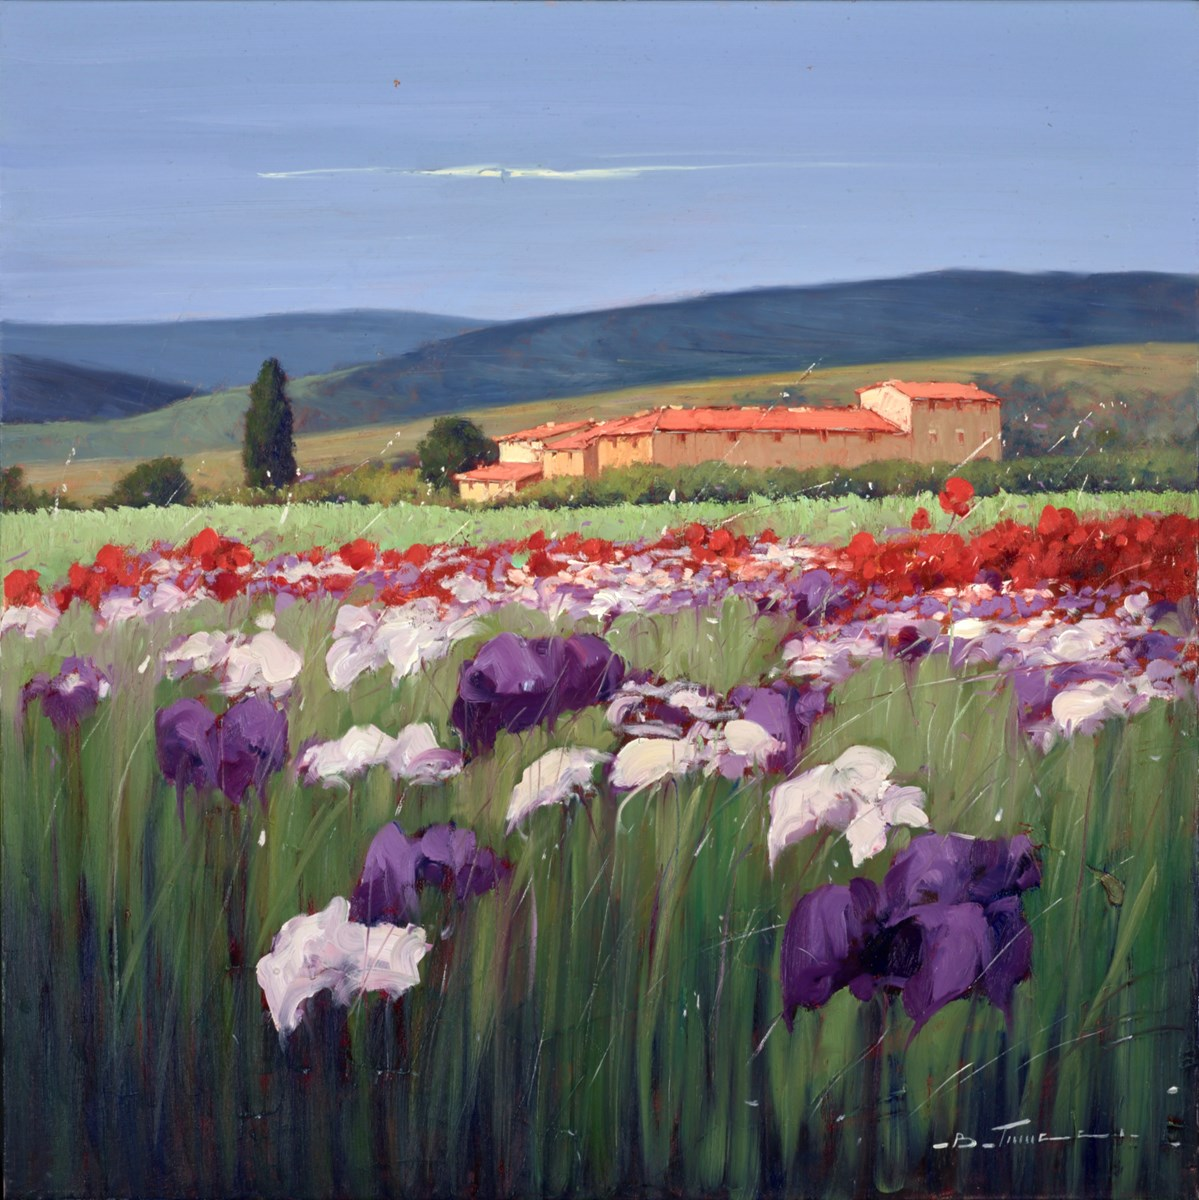 Moltissimi Fiori IV by bruno tinucci -  sized 32x32 inches. Available from Whitewall Galleries